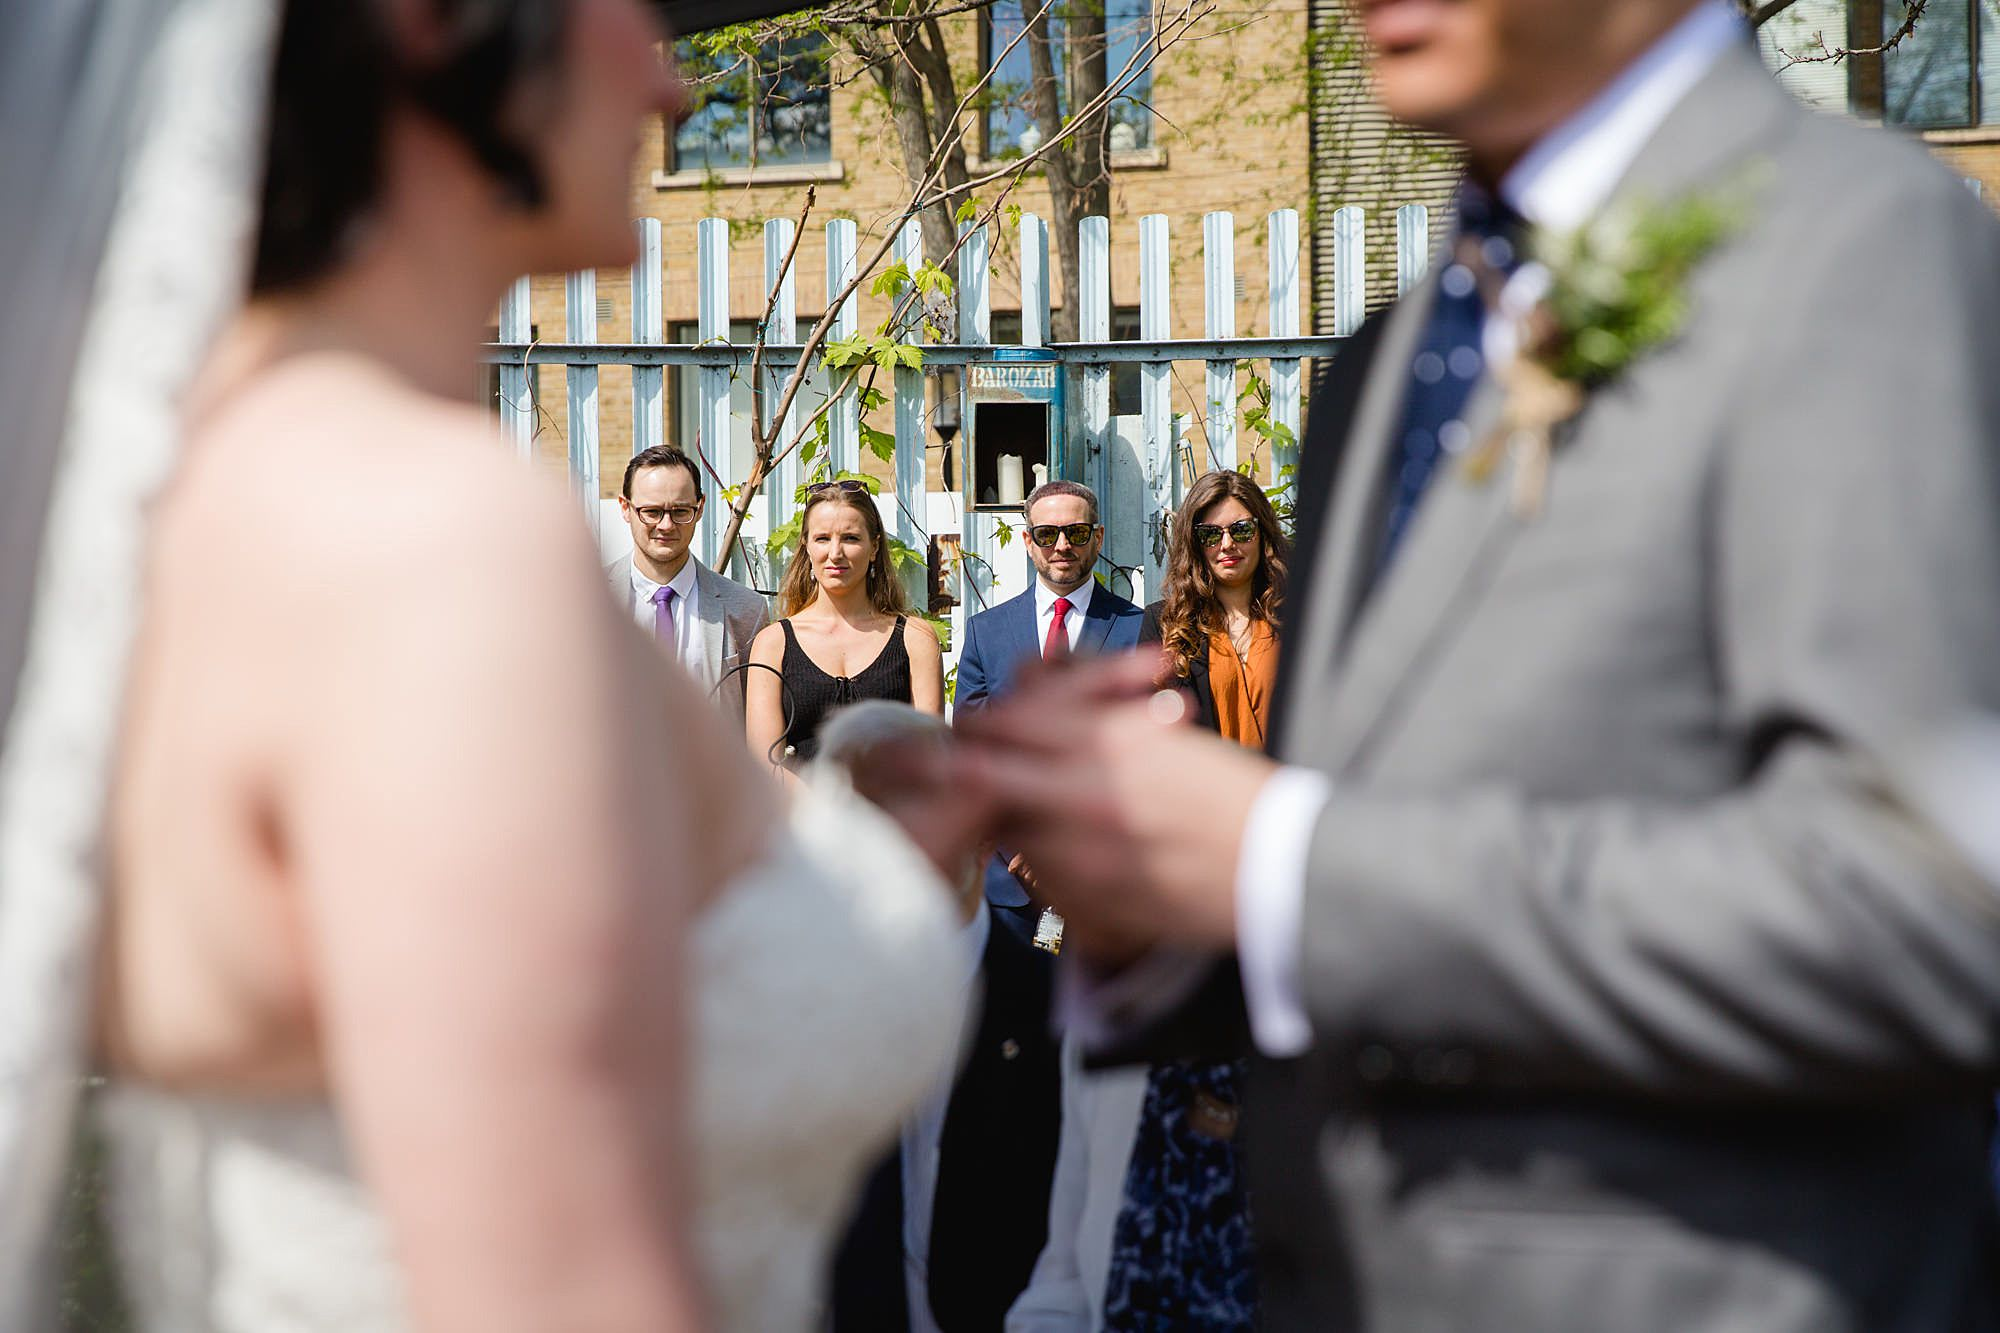 Brunel museum wedding guests watch bride and groom exchanging rings